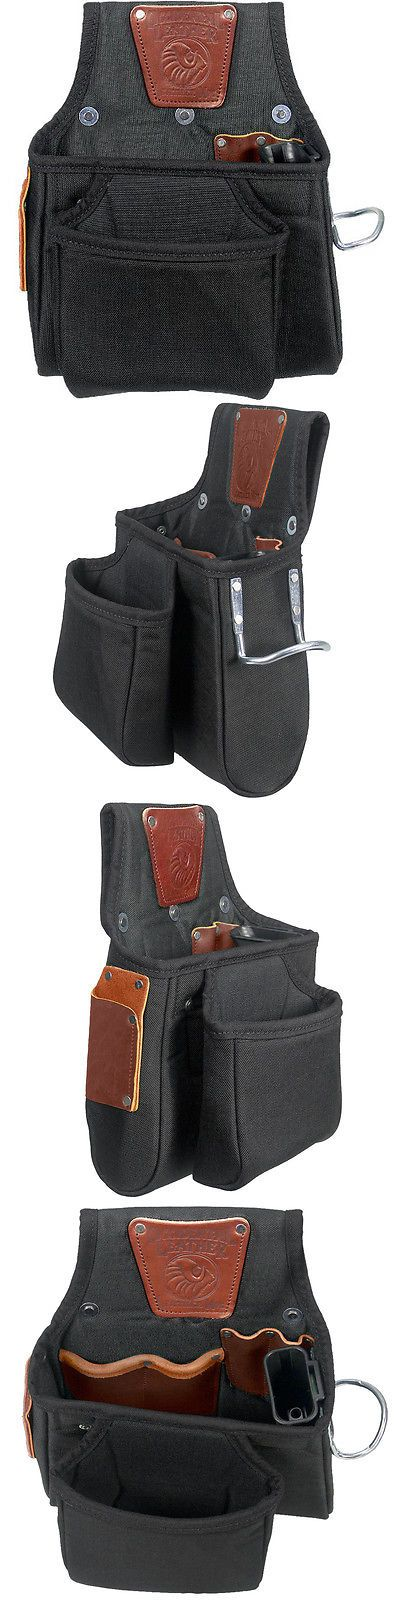 Bags Belts and Pouches 42362: Occidental Leather 9521 Carpenter Finisher Finishing Tool Bag -> BUY IT NOW ONLY: $65.7 on eBay!